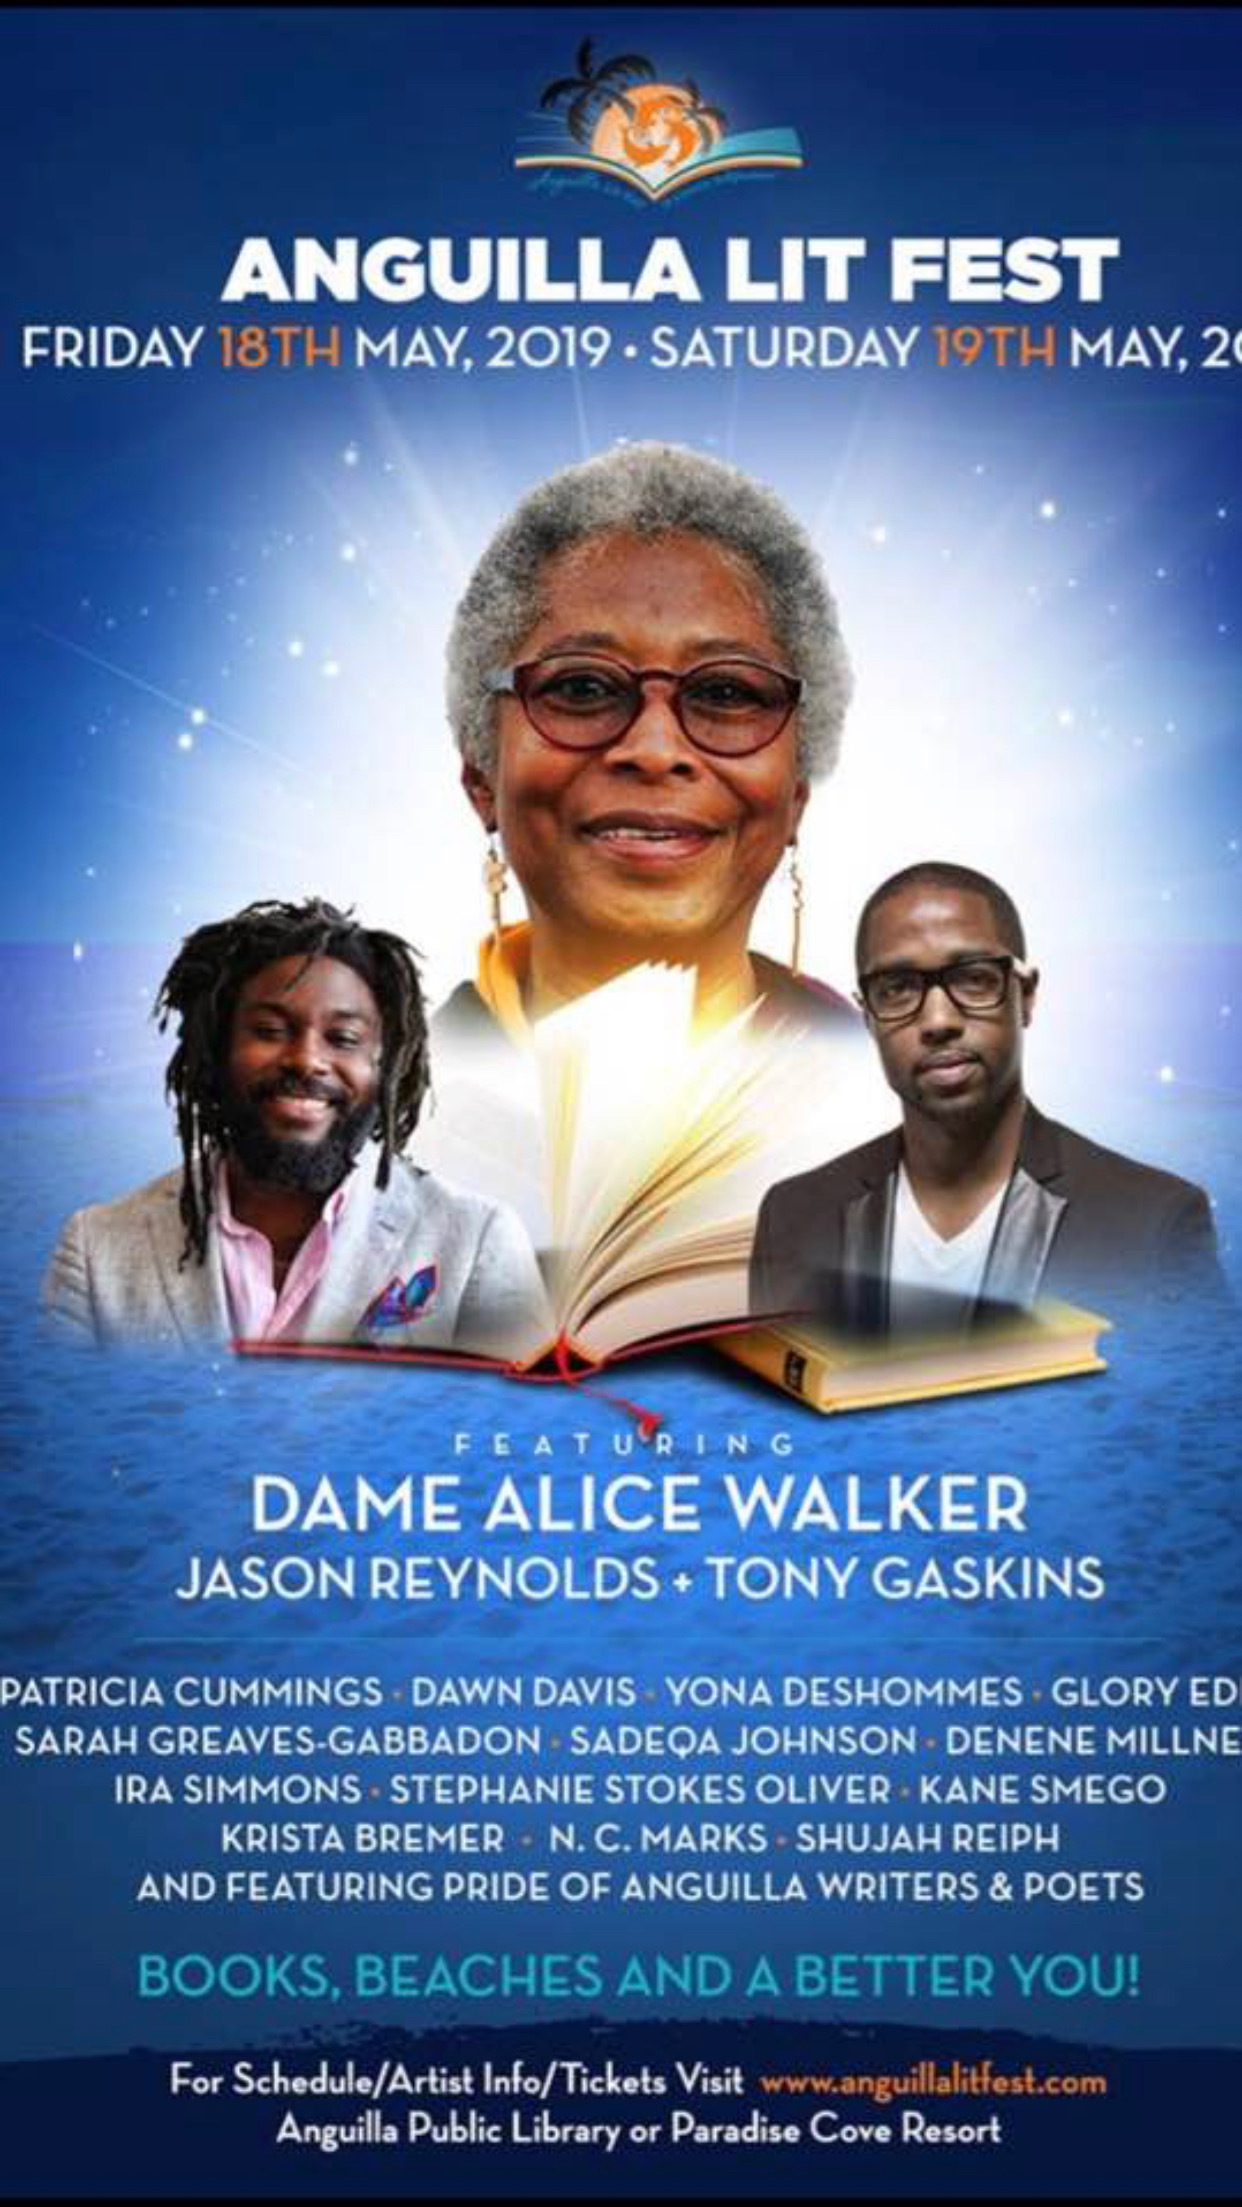 Look who's sharing billing on a poster with Alice Walker!